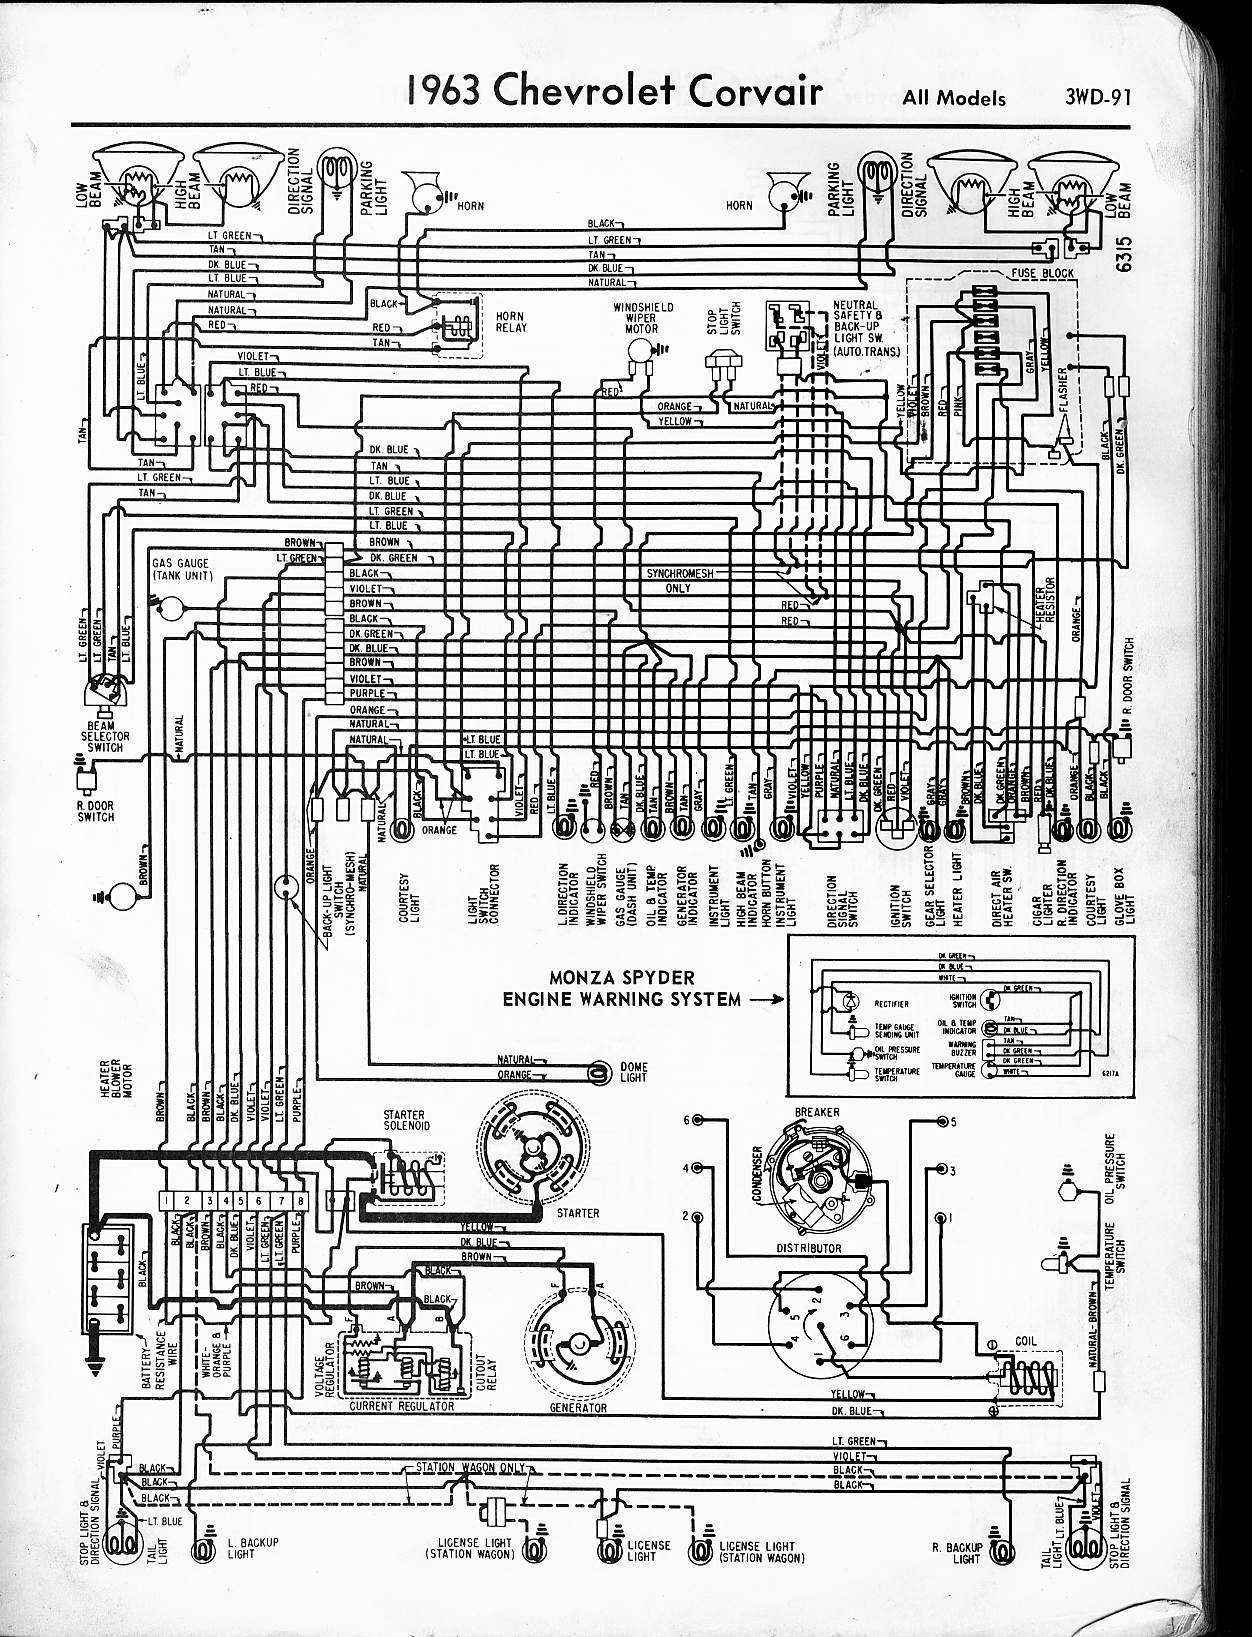 57 65 chevy wiring diagrams 1963 corvette right